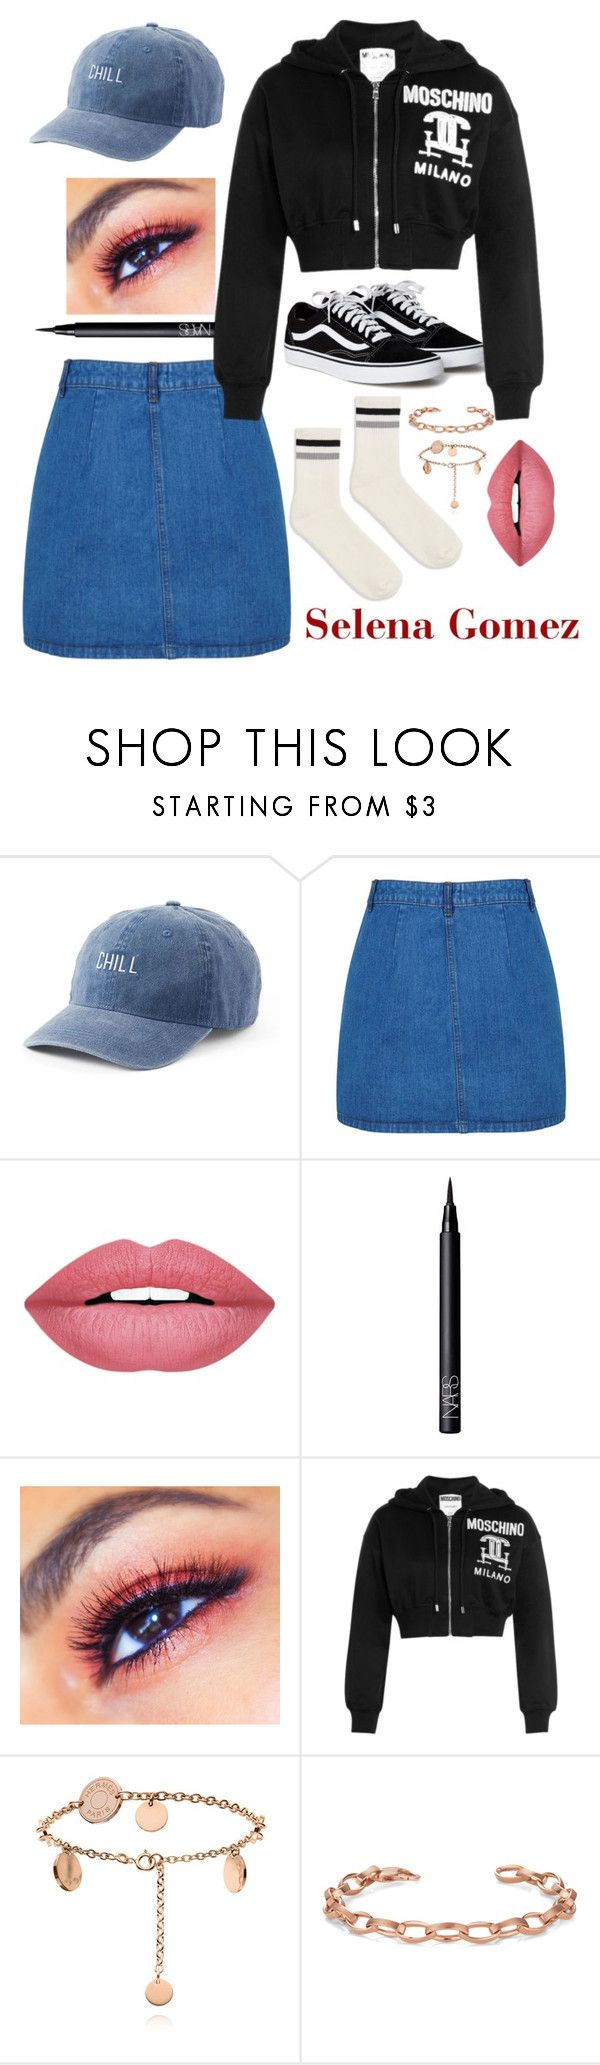 """SELENA INSPIRED 🖤"" by yabiog on Polyvore featuring SO, Miss Selfridge, Forever 21, NARS Cosmetics, Moschino and Topshop"